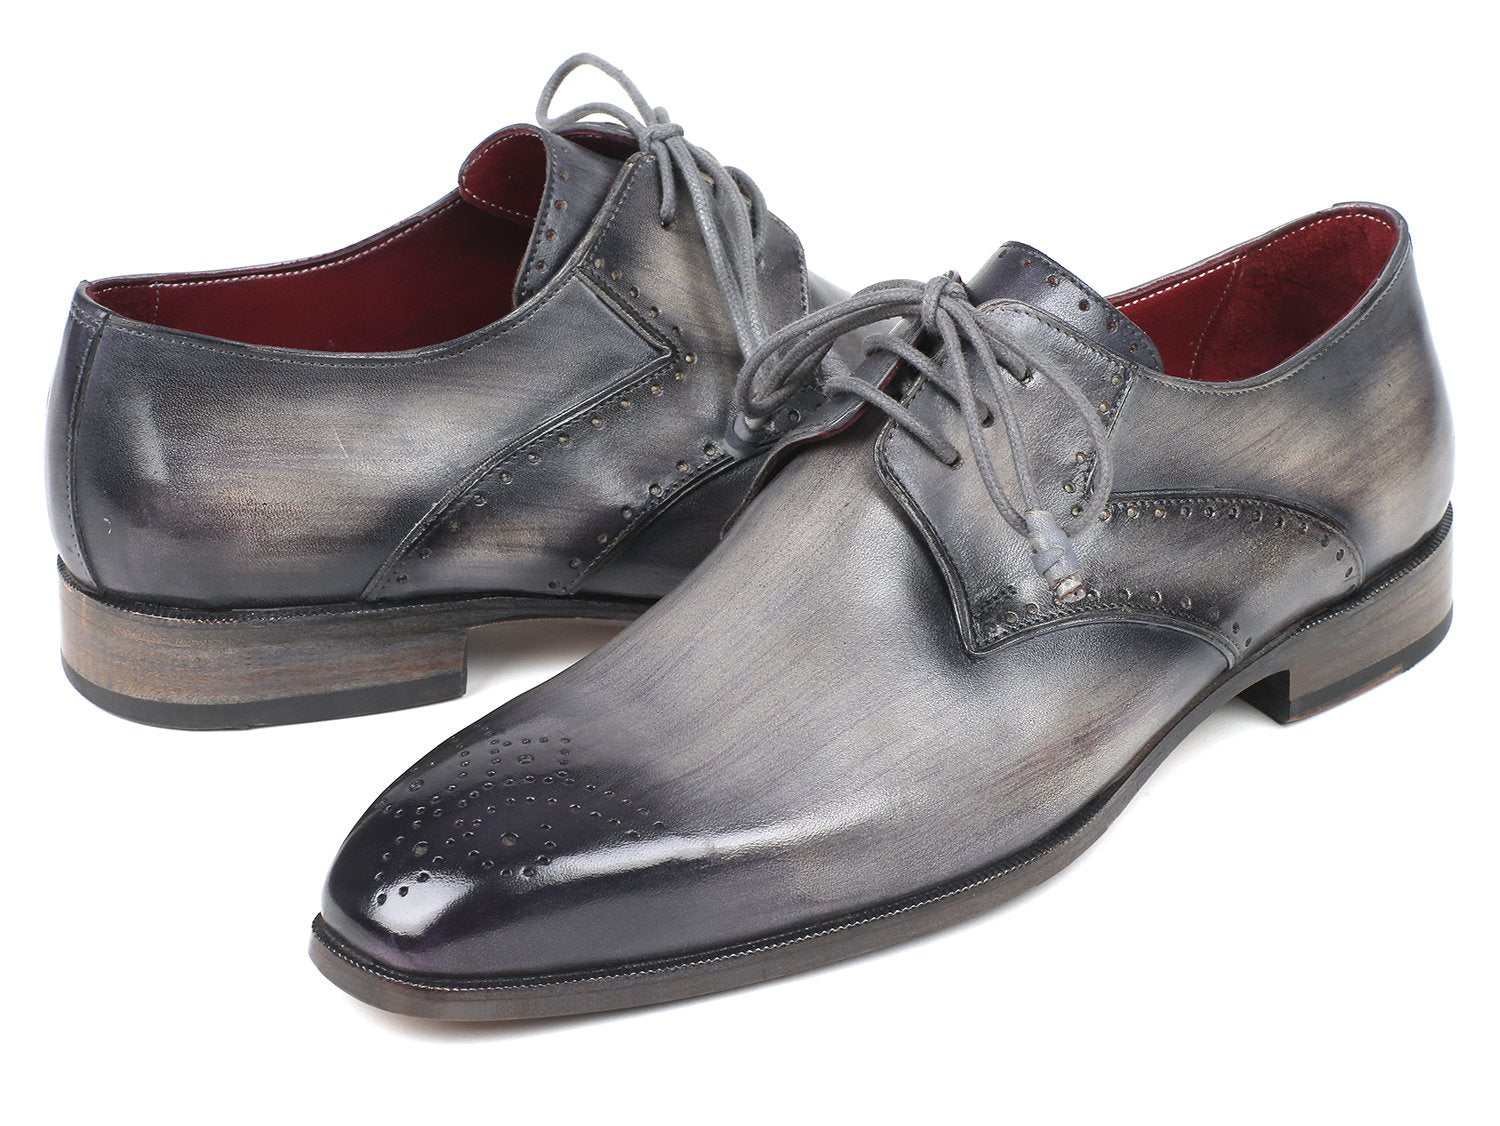 Paul Parkman Men's Gray Medallion Toe Derby Shoes (ID#6584-GRY)